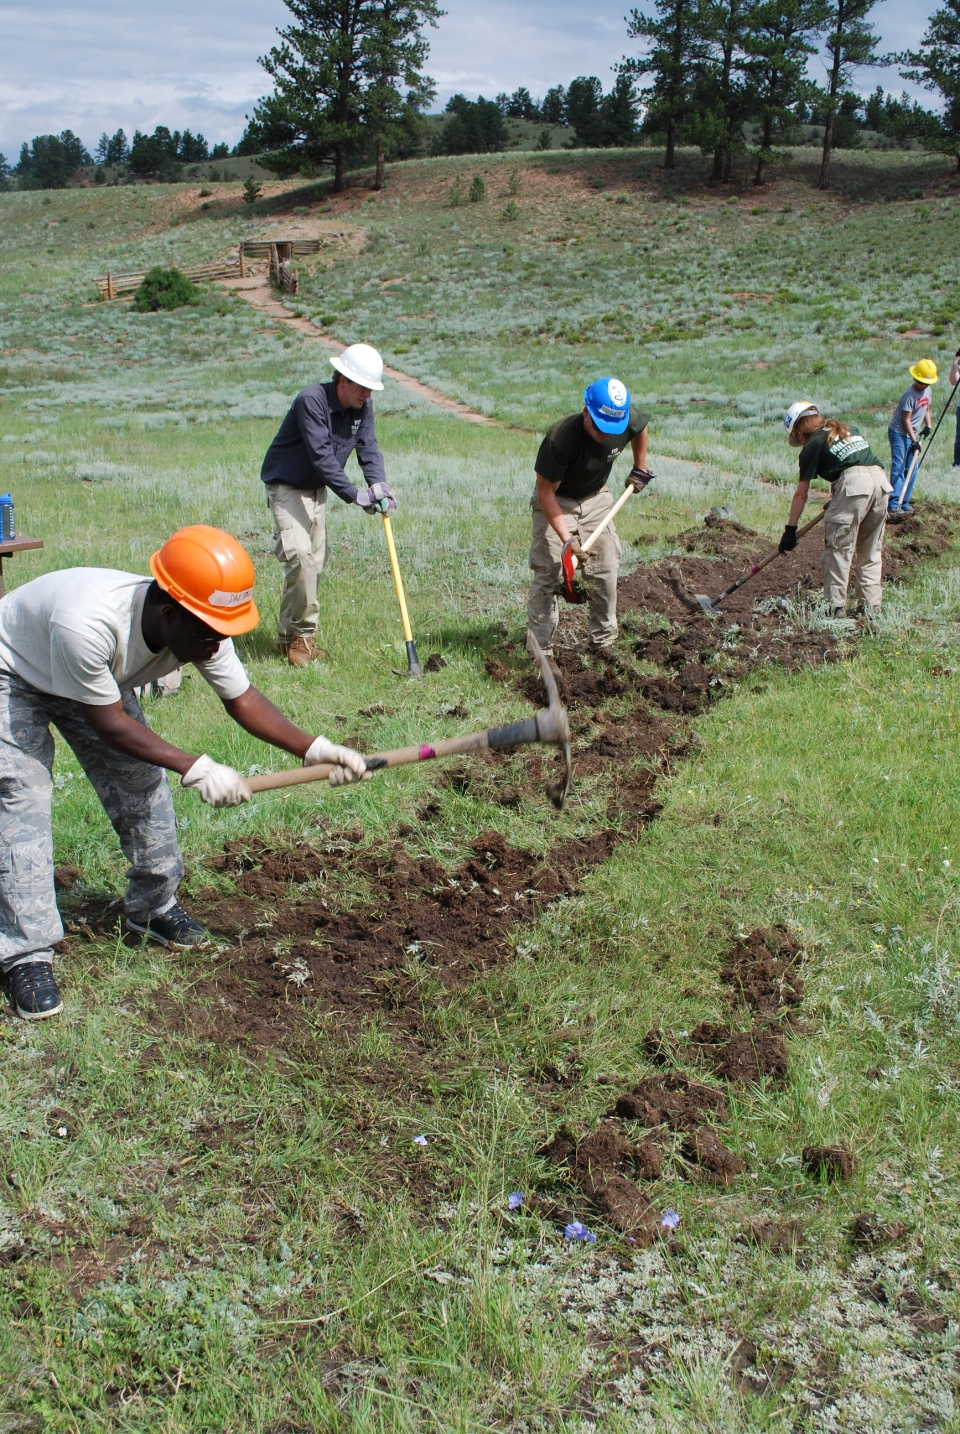 High school students digging and building trails